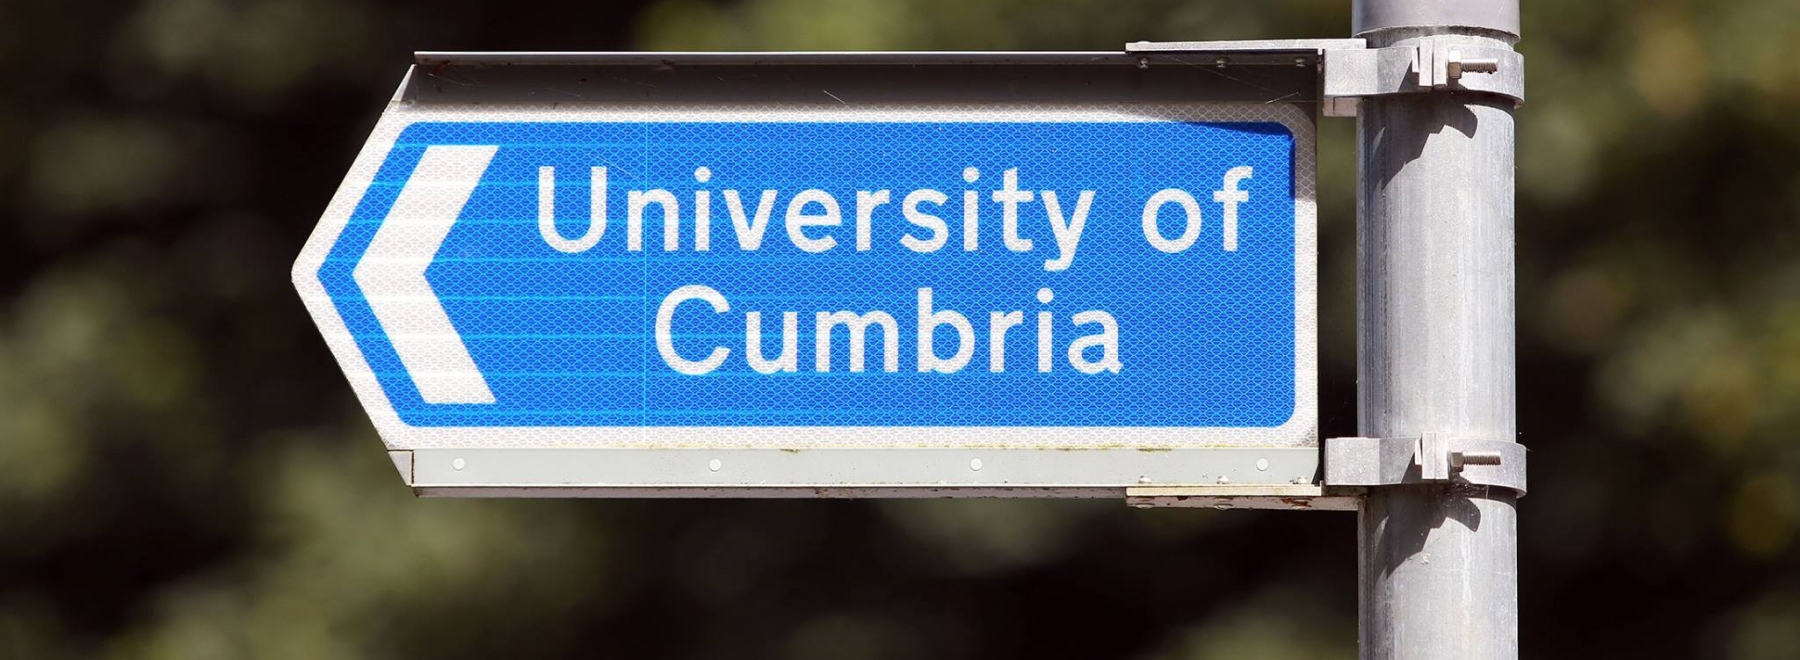 University of Cumbria header